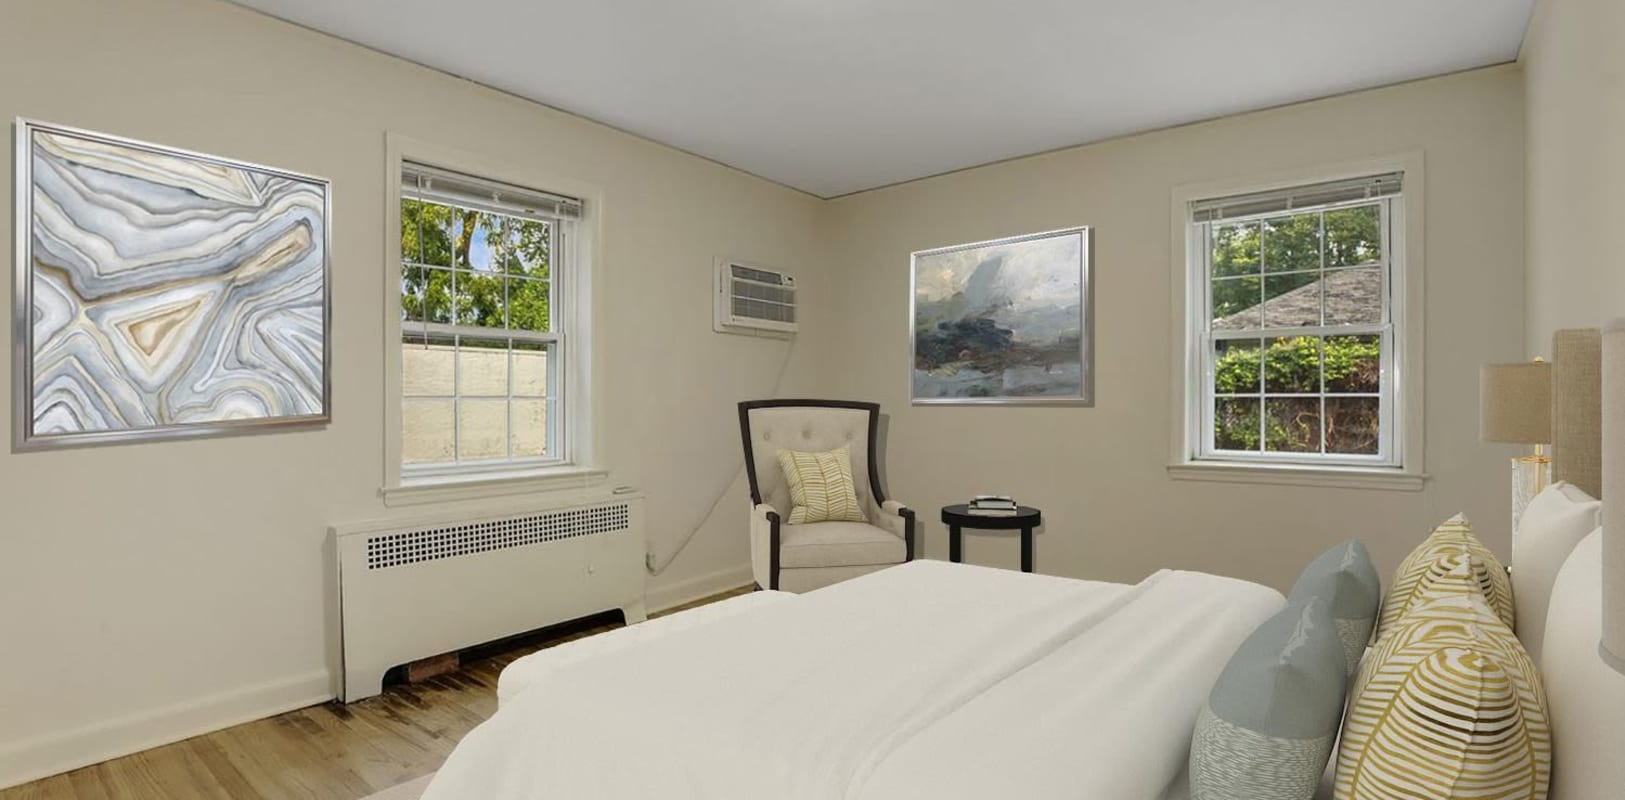 Bedroom with wood style flooring at Mayflower Apartments in Ridgewood, New Jersey